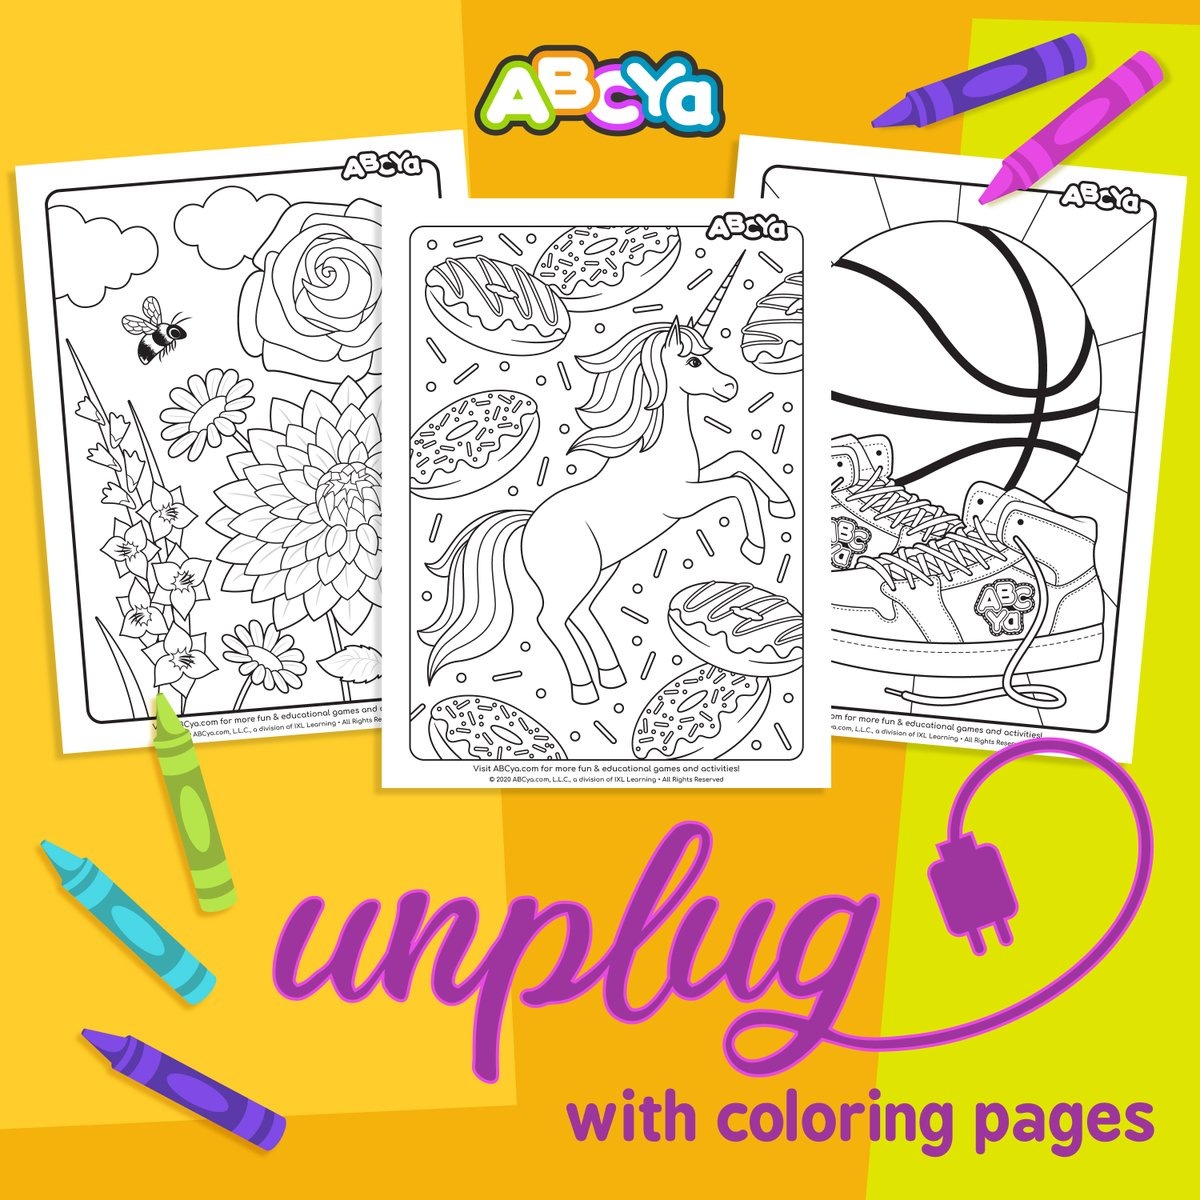 Abcya Com S Tweet Need A Break From Screen Time Check Out Abcya S Collection Of Printable Coloring Pages Abcya Nationaldayofunplugging Trendsmap